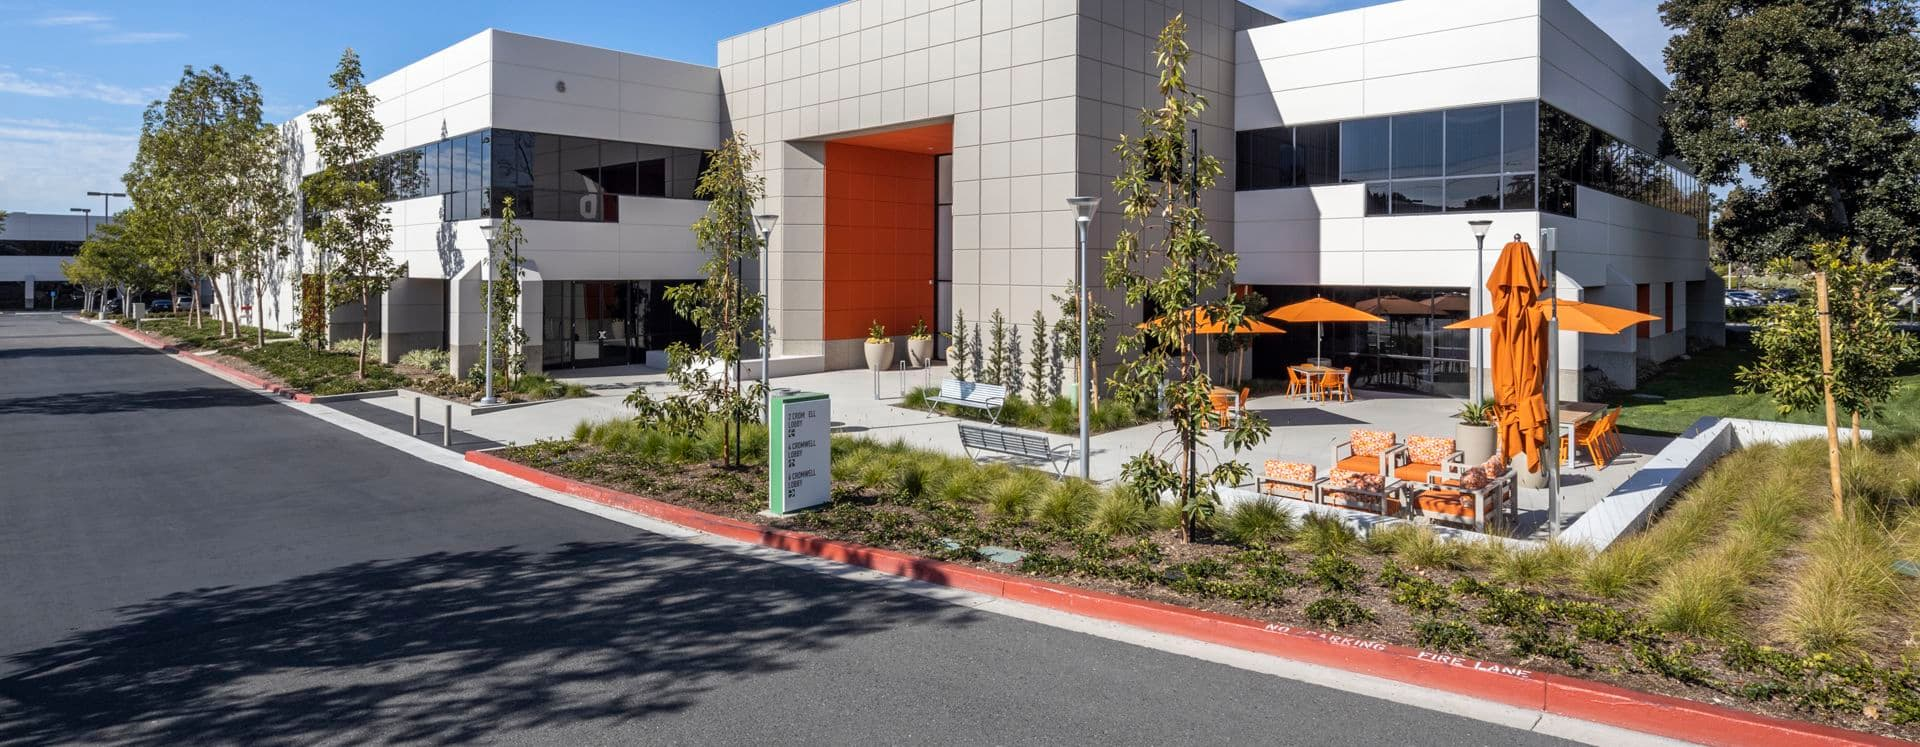 Exterior building photography for Bake Technology Park at 6 Cromwell, Irvine, CA